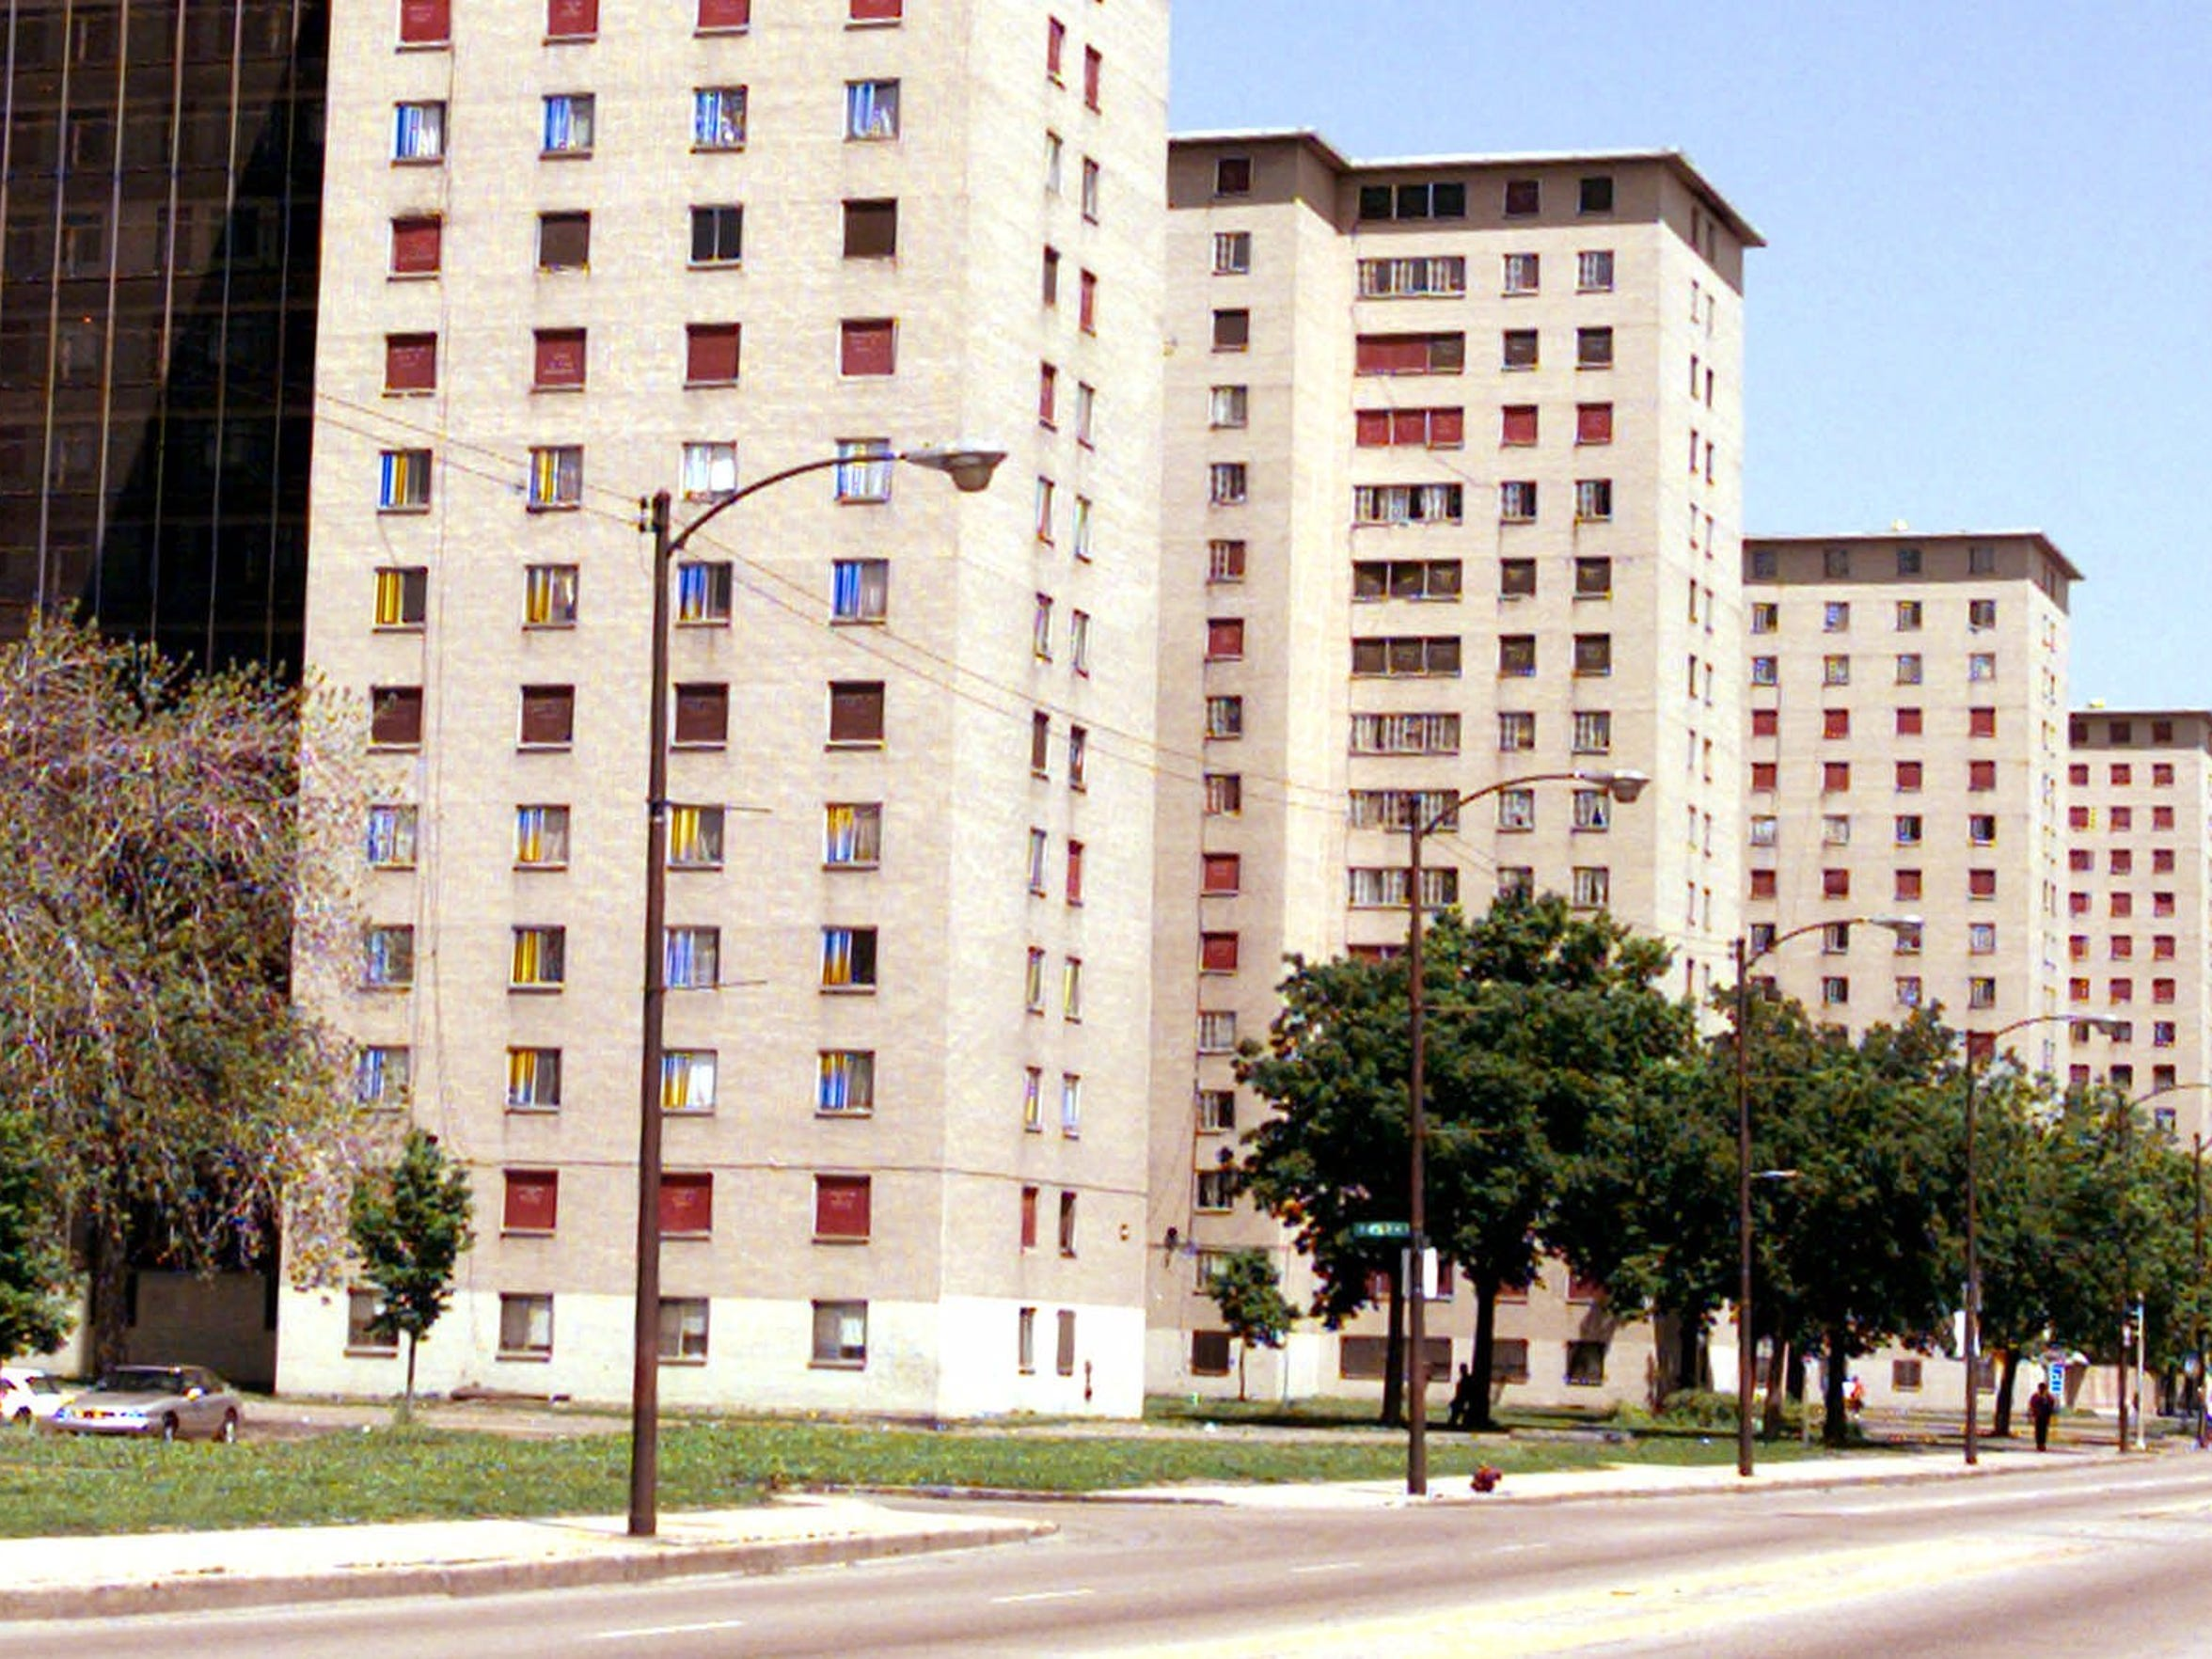 The Robert Taylor Homes in May 1999.